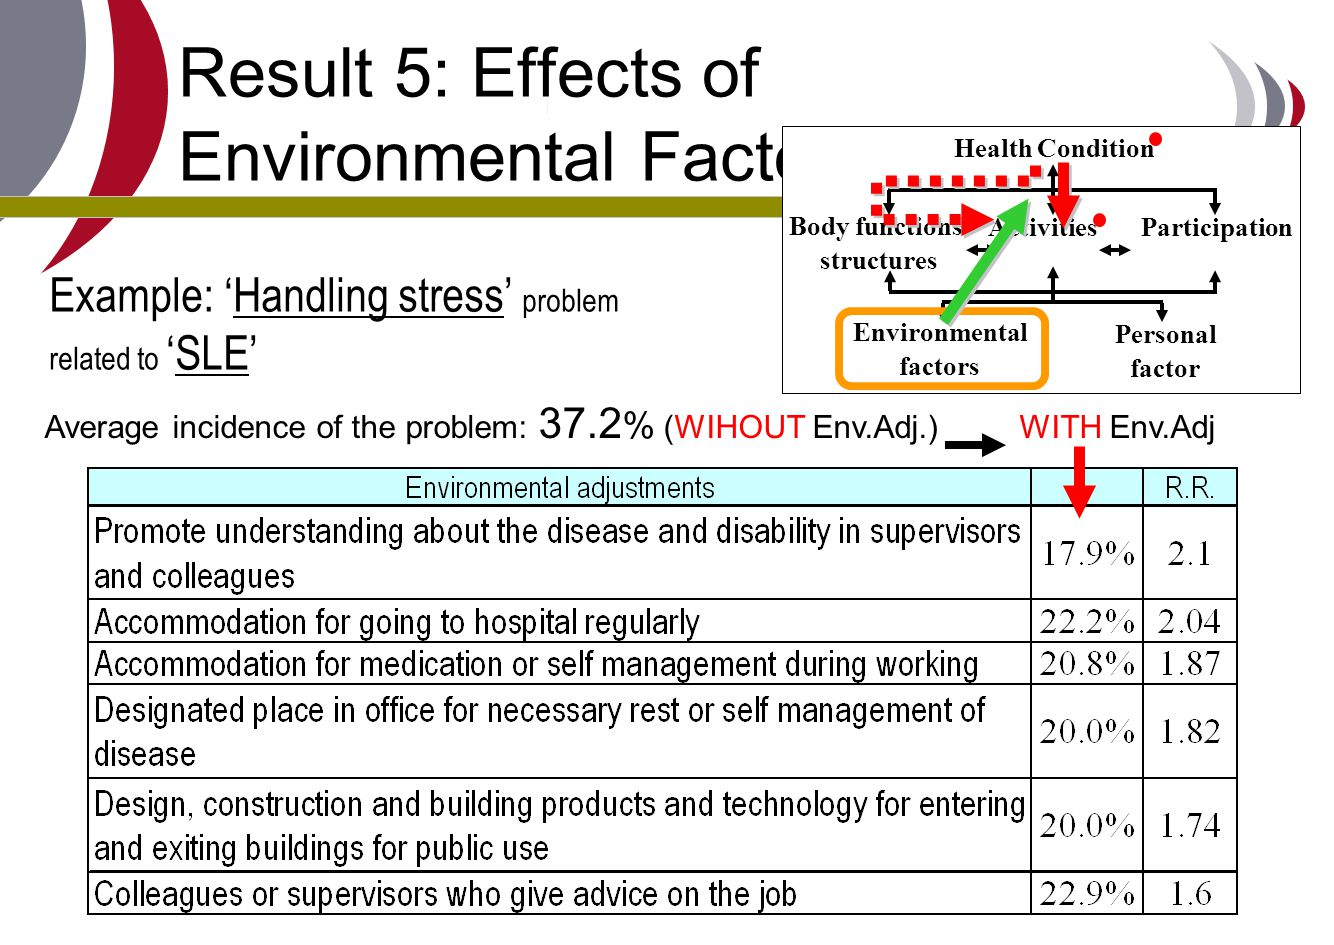 Result 5: Effects of Environmental Factors (2)